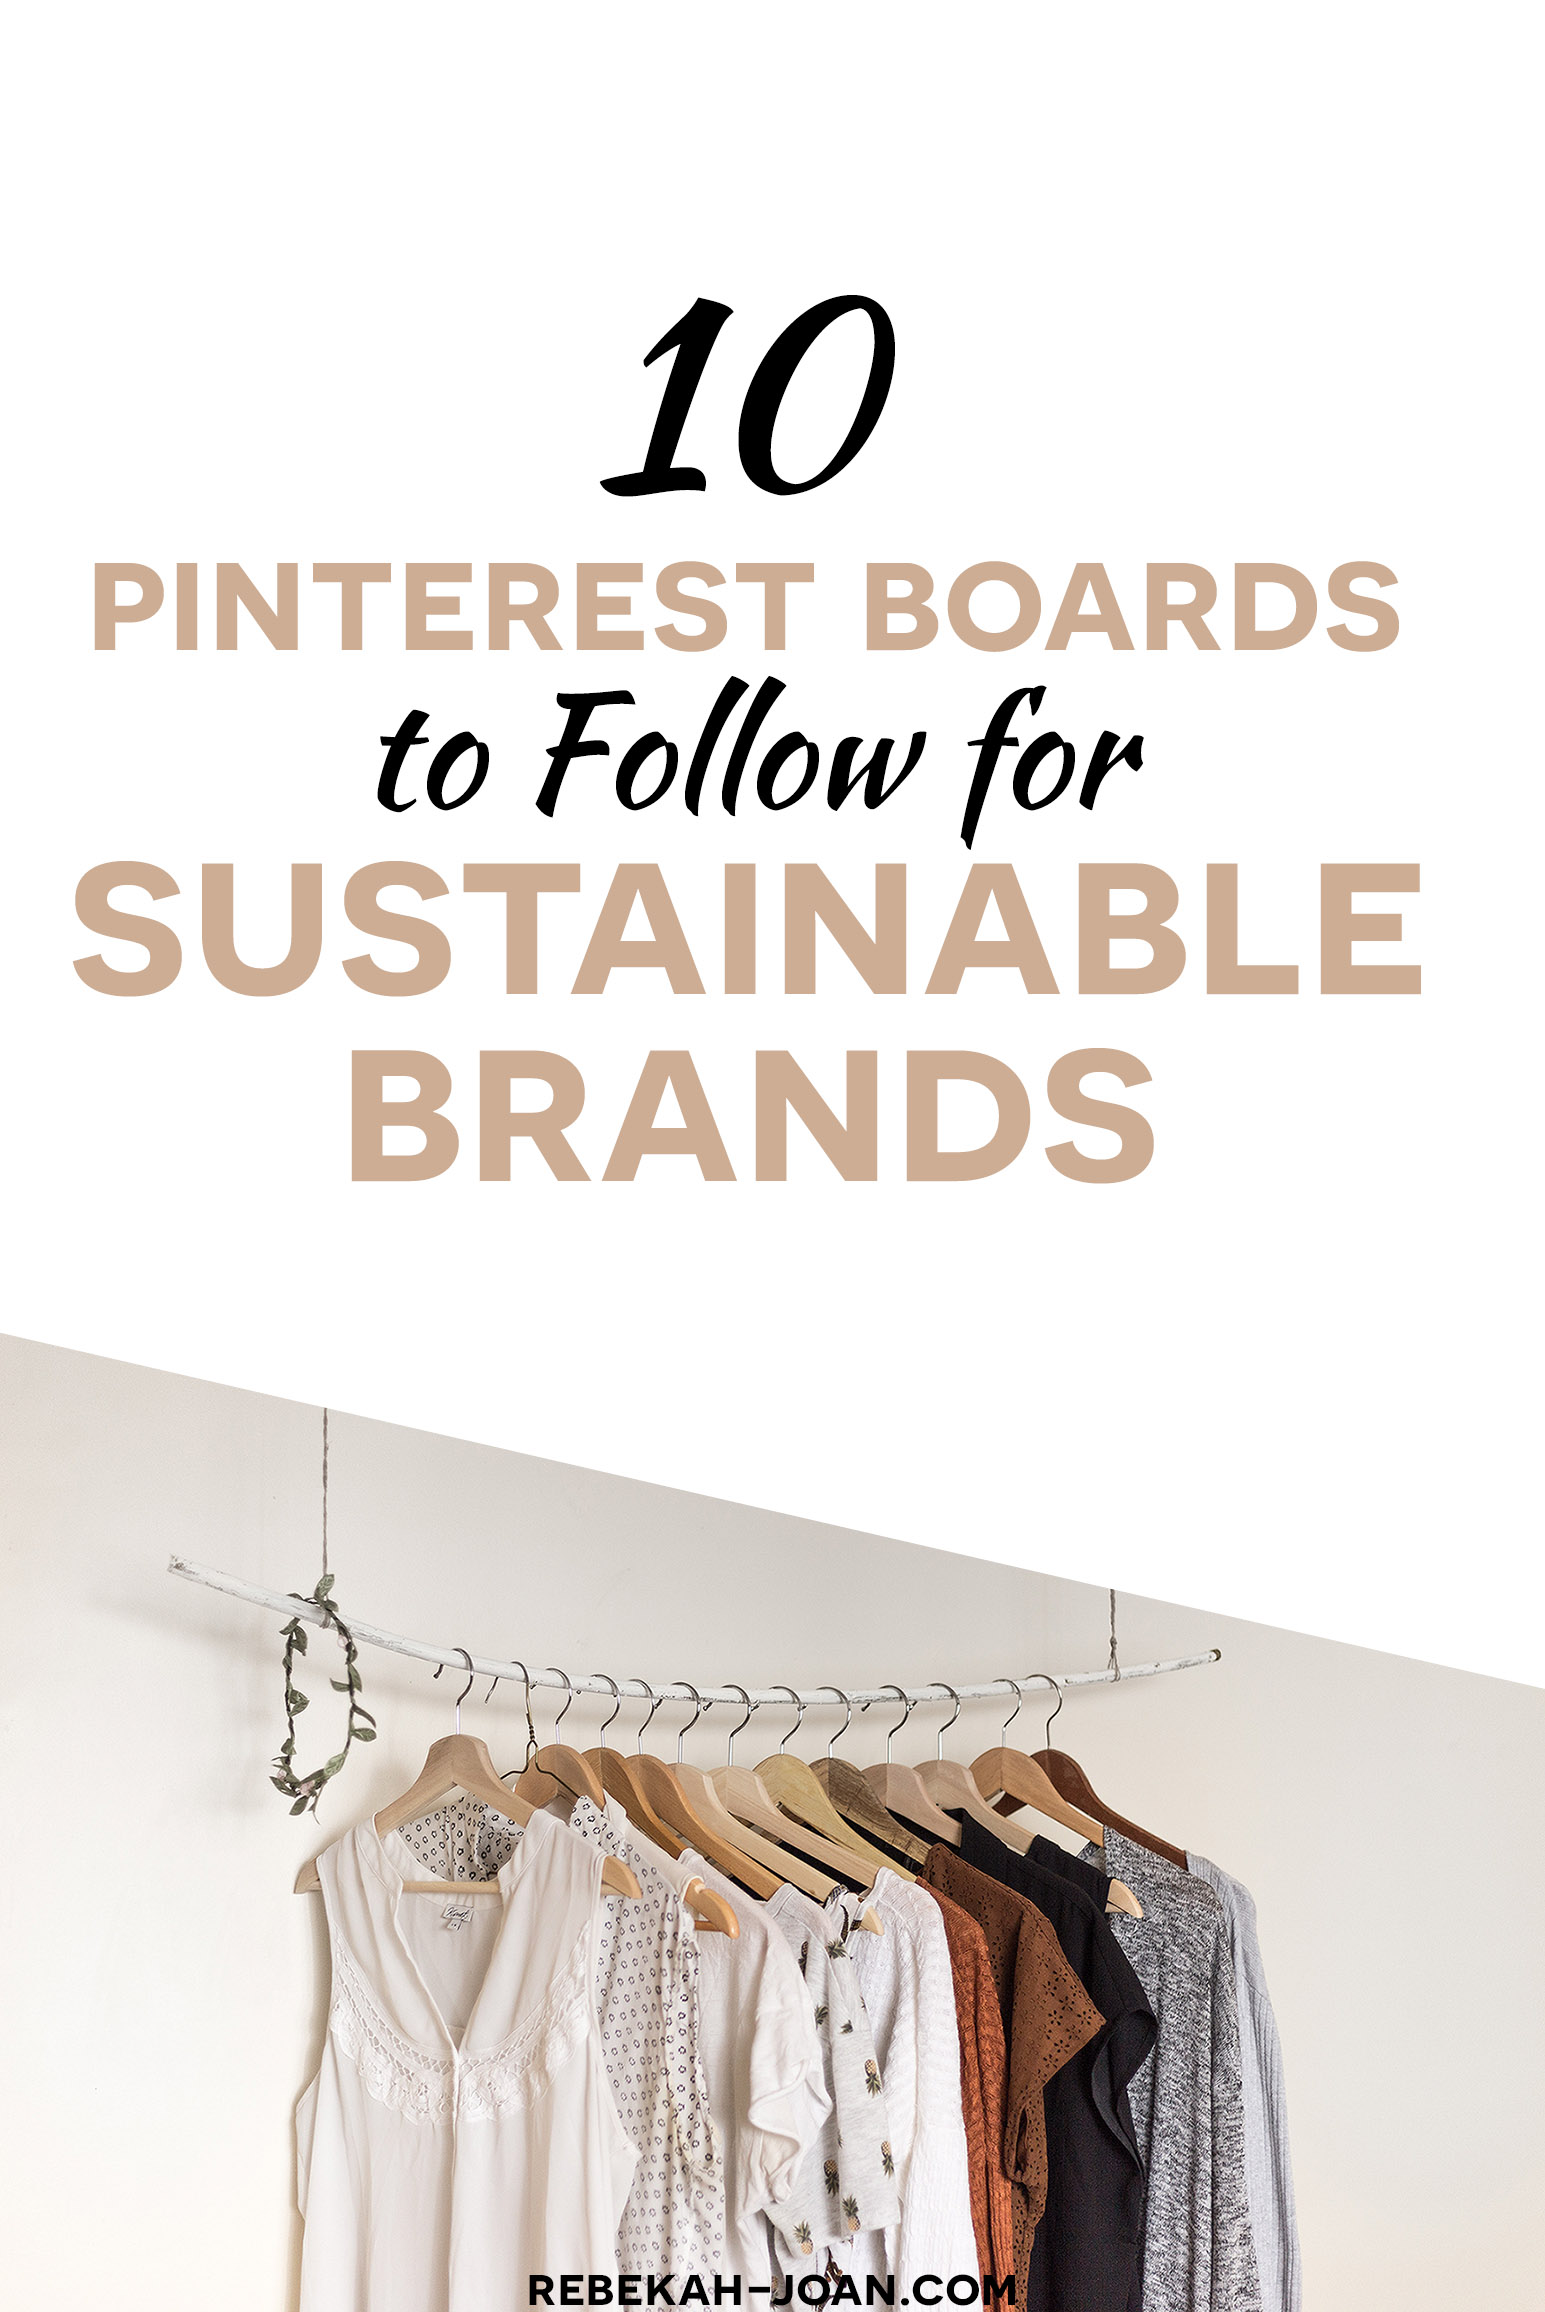 - There are lots of brands out there, but which ones are best for the environment? To help you along your sustainable, eco-friendly, or zero waste journey, here are 10 Pinterest boards to help you discover ethical + sustainable brands.